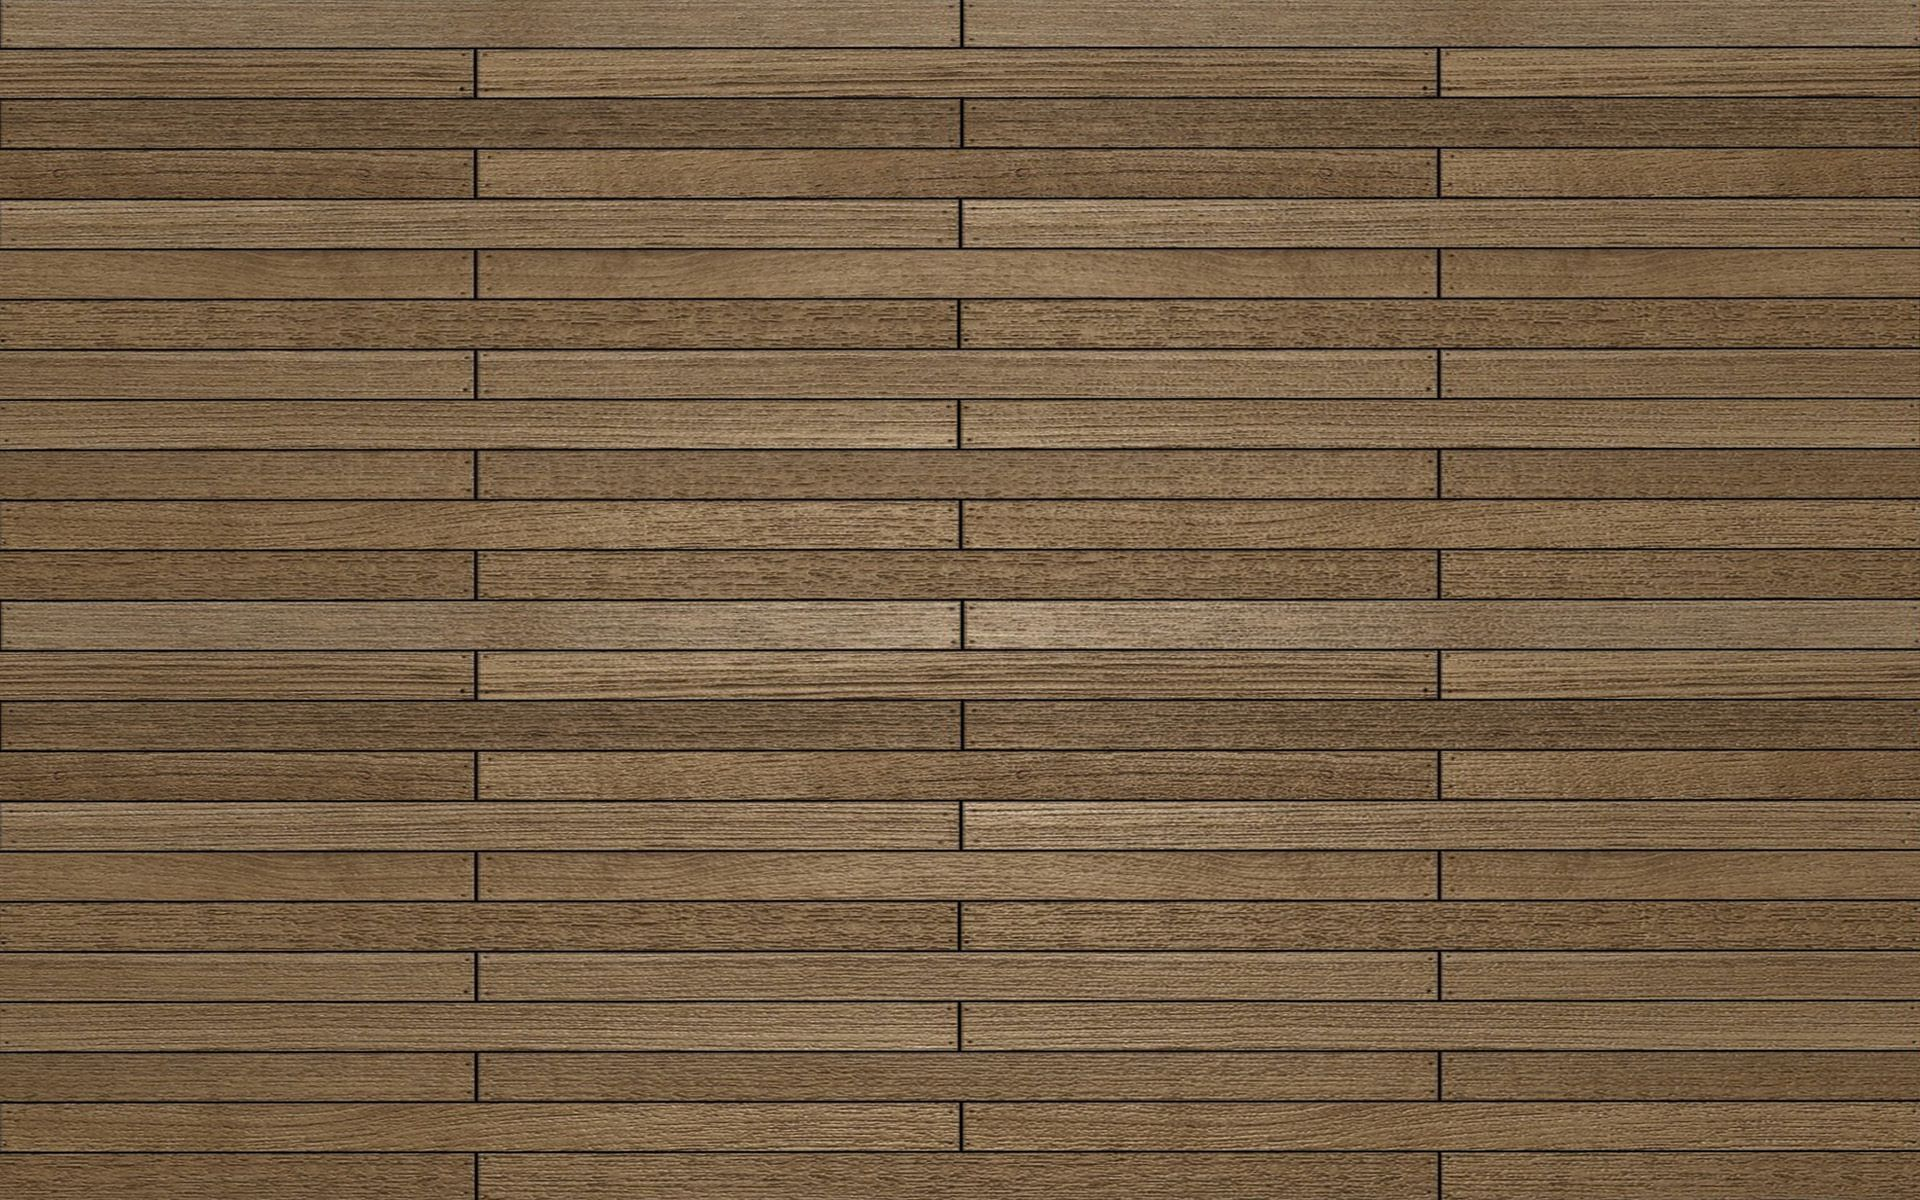 Wood Flooring Background Awesome 31006 Material Texture And Pattern Pinterest Wood Floor